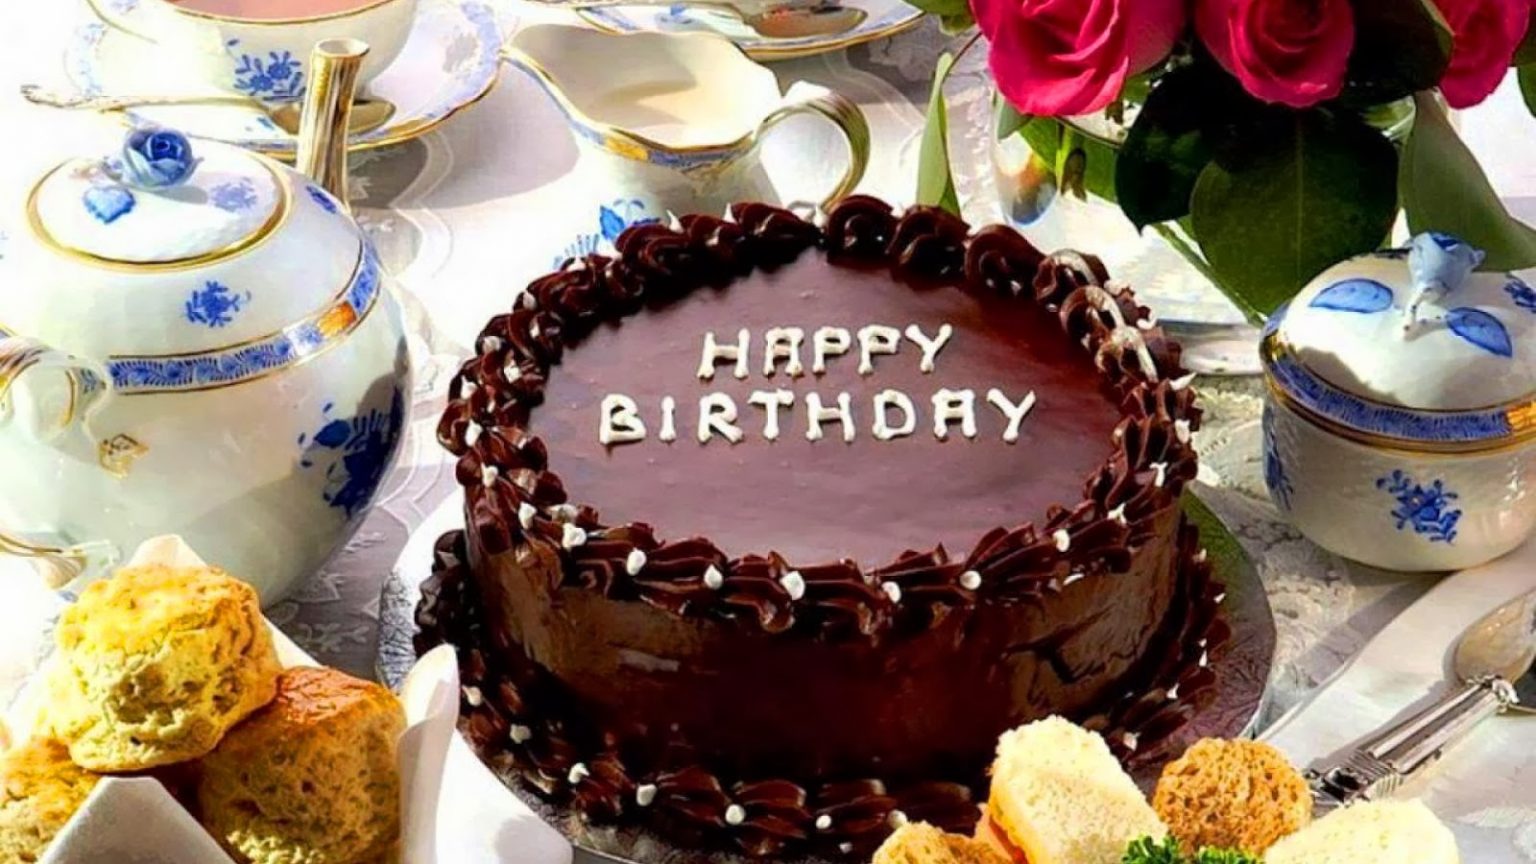 Free Download Happy Birthday Cake Wallpaper Hd Happy Birthday Chocolate Cake 1600x900 For Your Desktop Mobile Tablet Explore 49 Happy Birthday Cake Wallpaper Free Birthday Wallpaper Backgrounds Happy Birthday